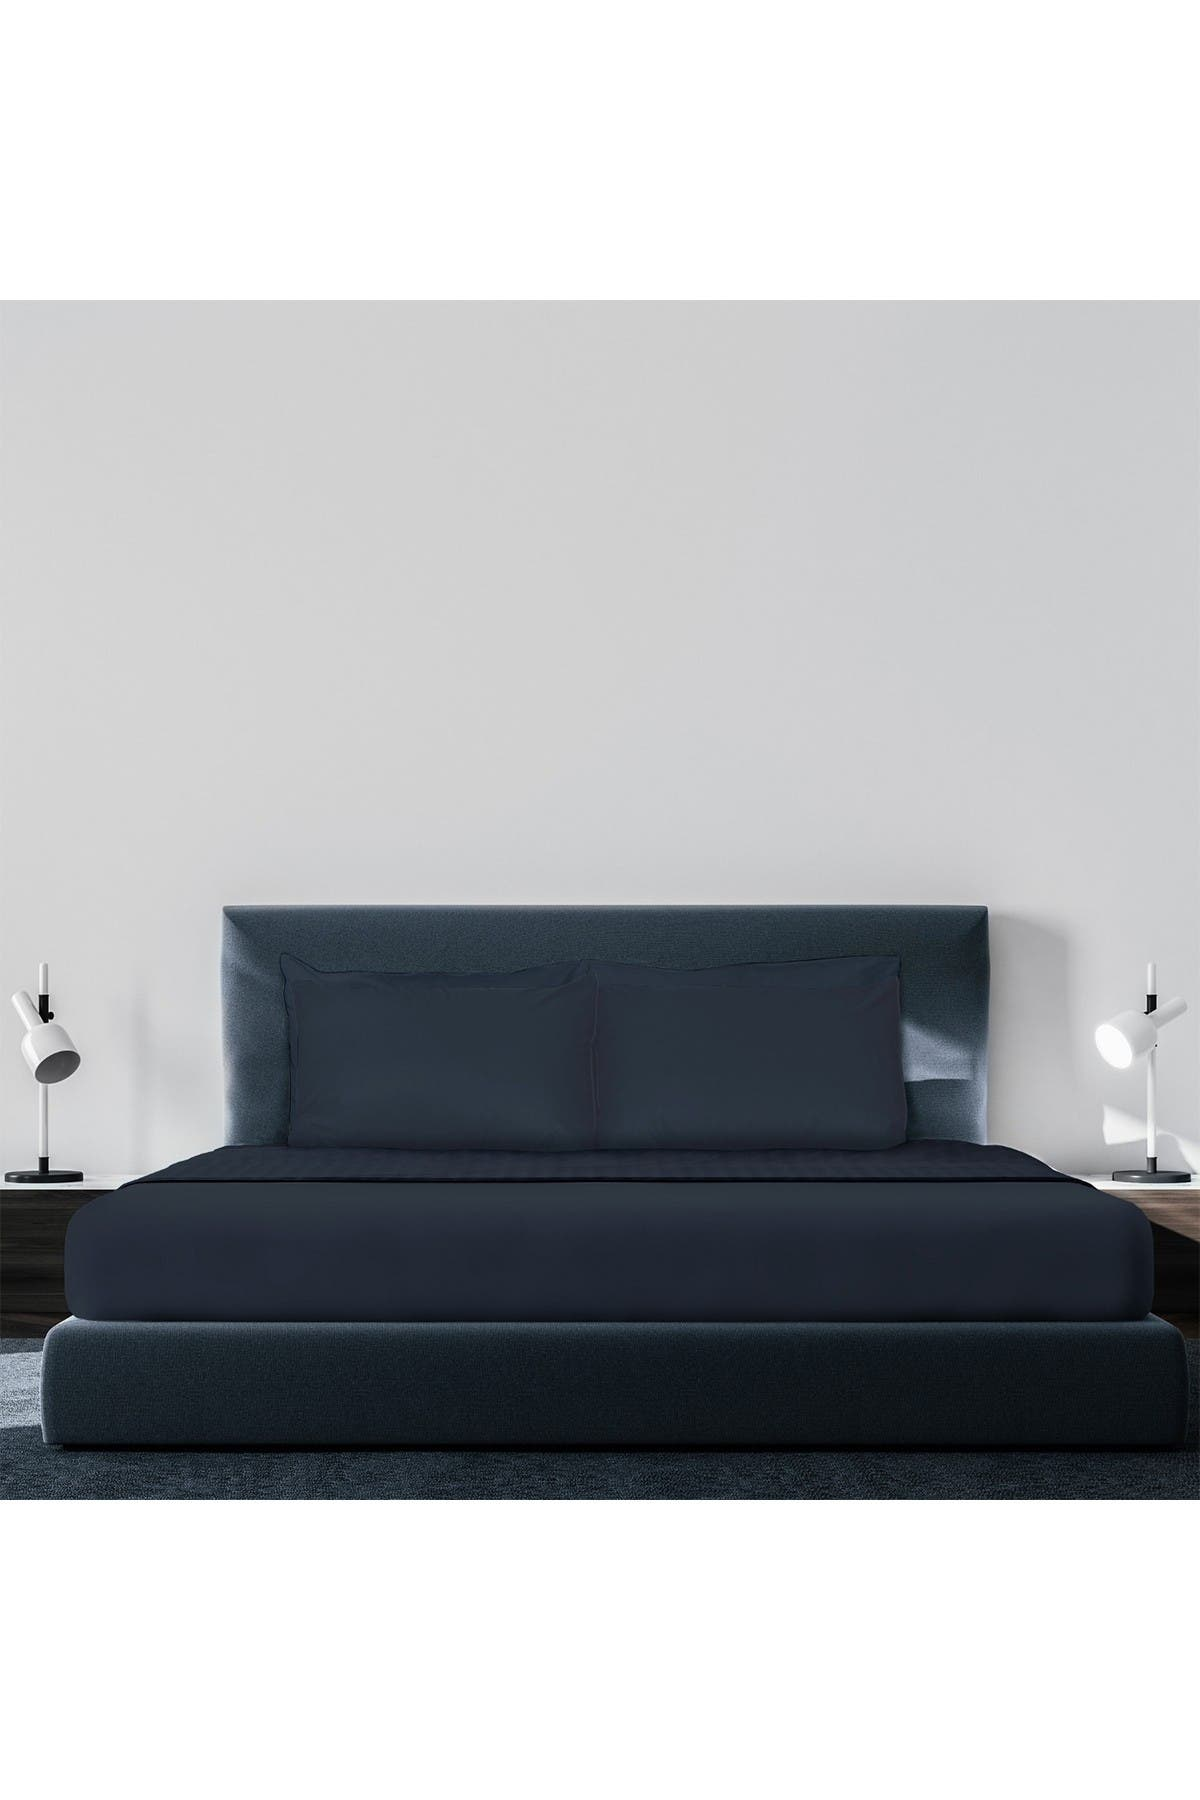 Image of Pillow Guy Luxe Soft & Smooth Tencel 6-Piece Sheet Set - Dark Navy - Cal King Size